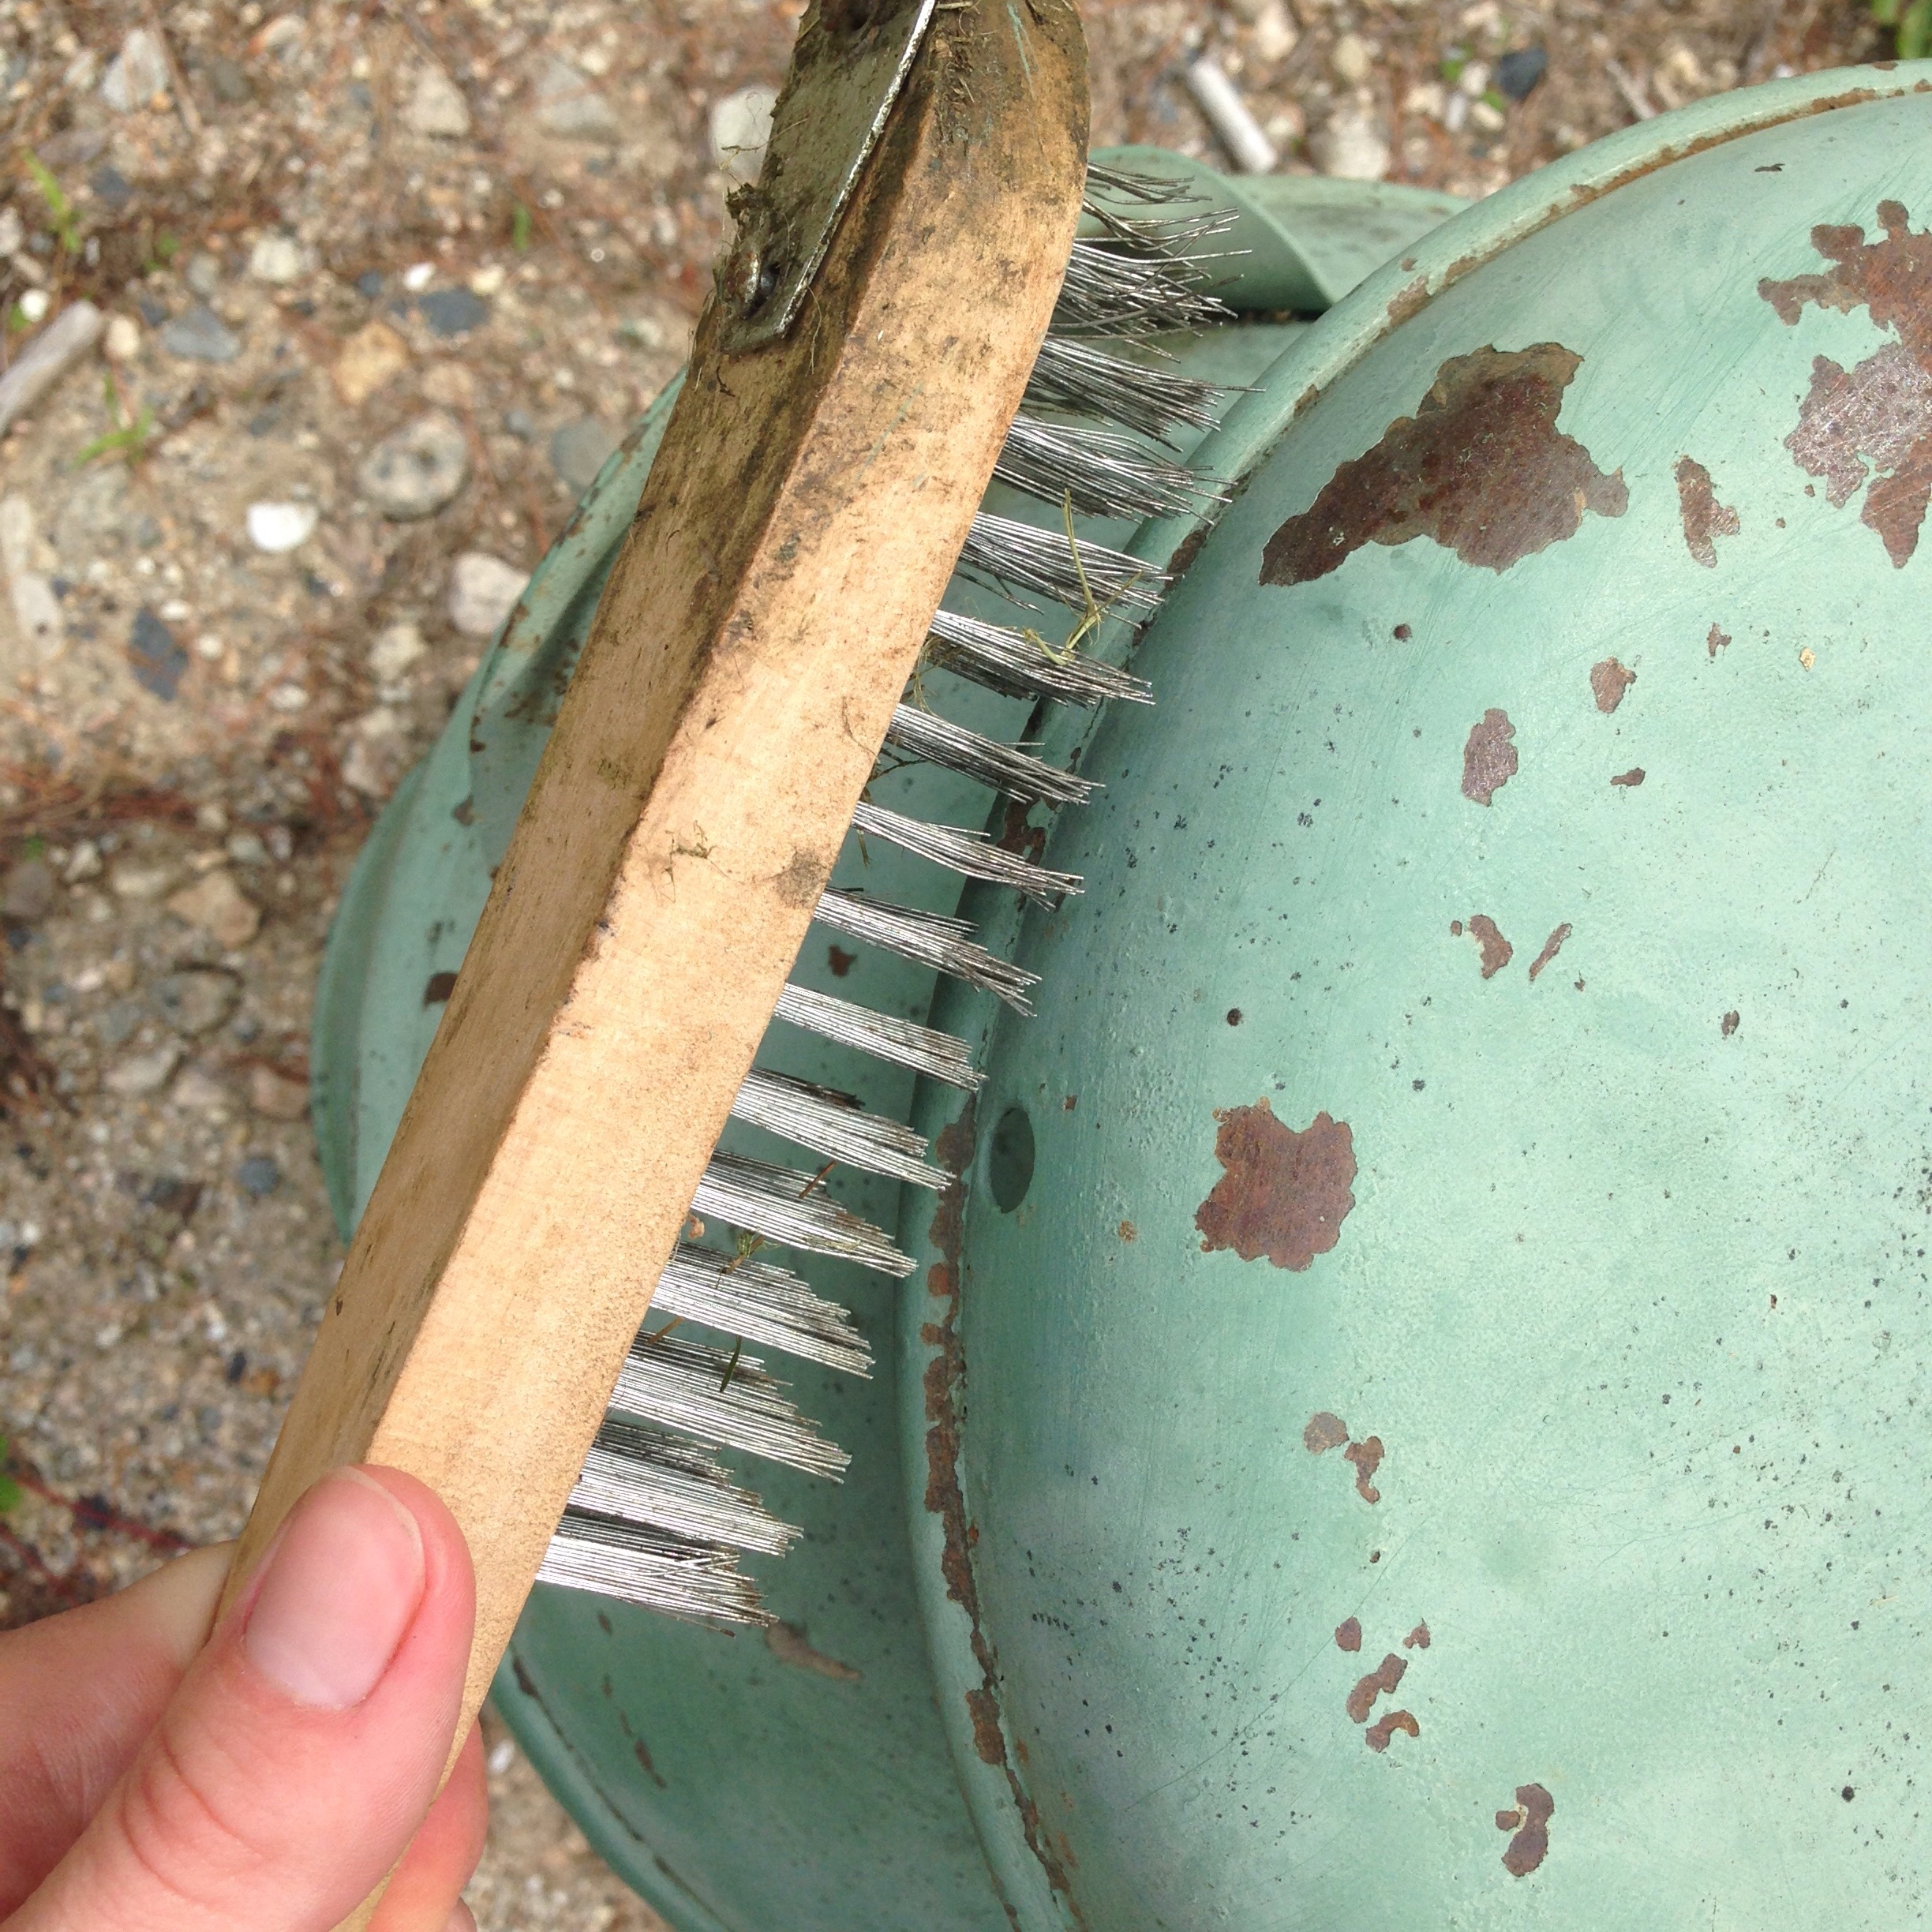 Remove loose rust and dirt with a wire brush